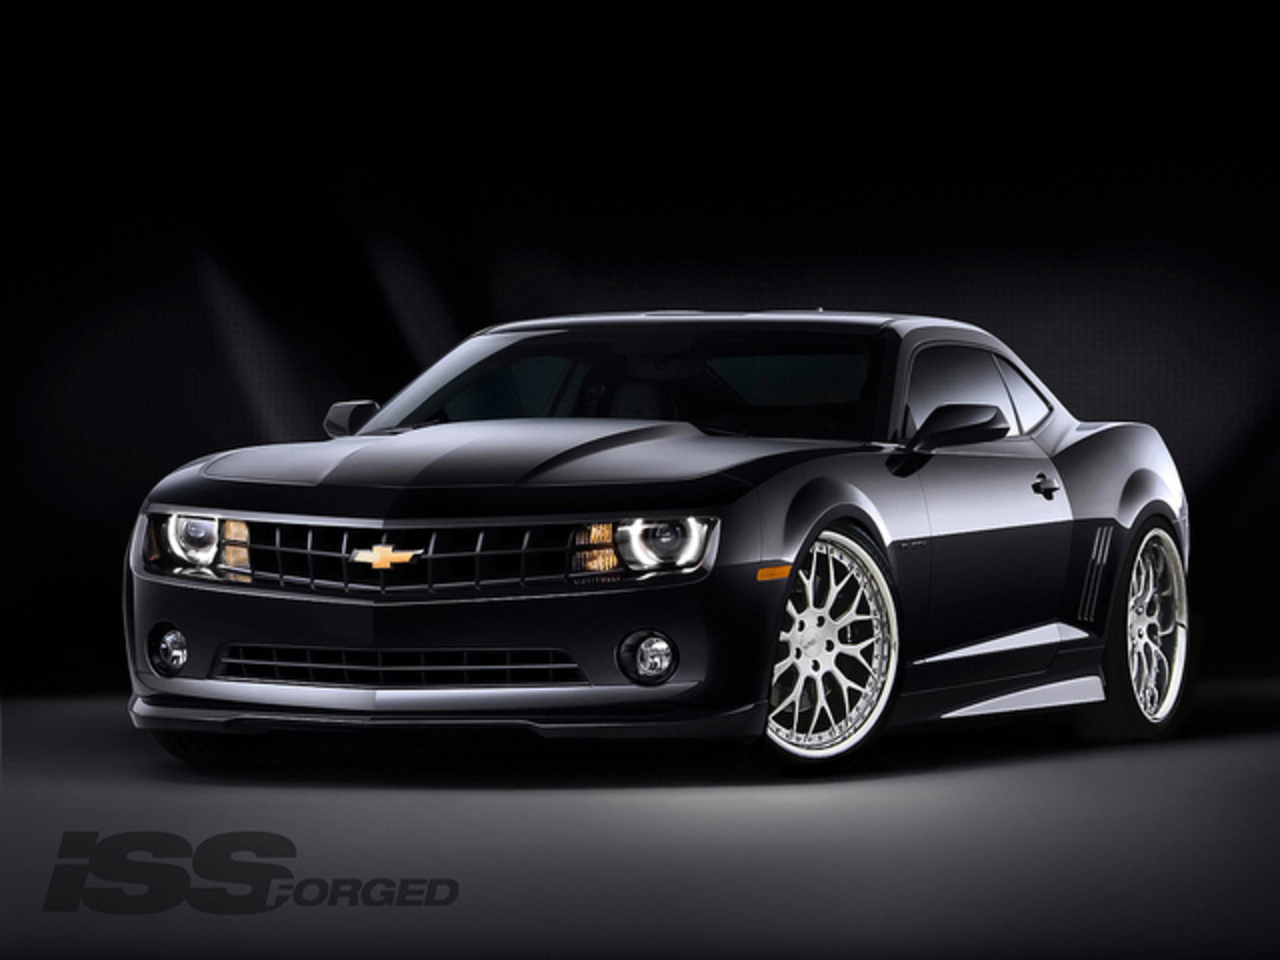 ISS Forged Chevrolet Camaro SS Concept l Gran Turismo Spyder ...